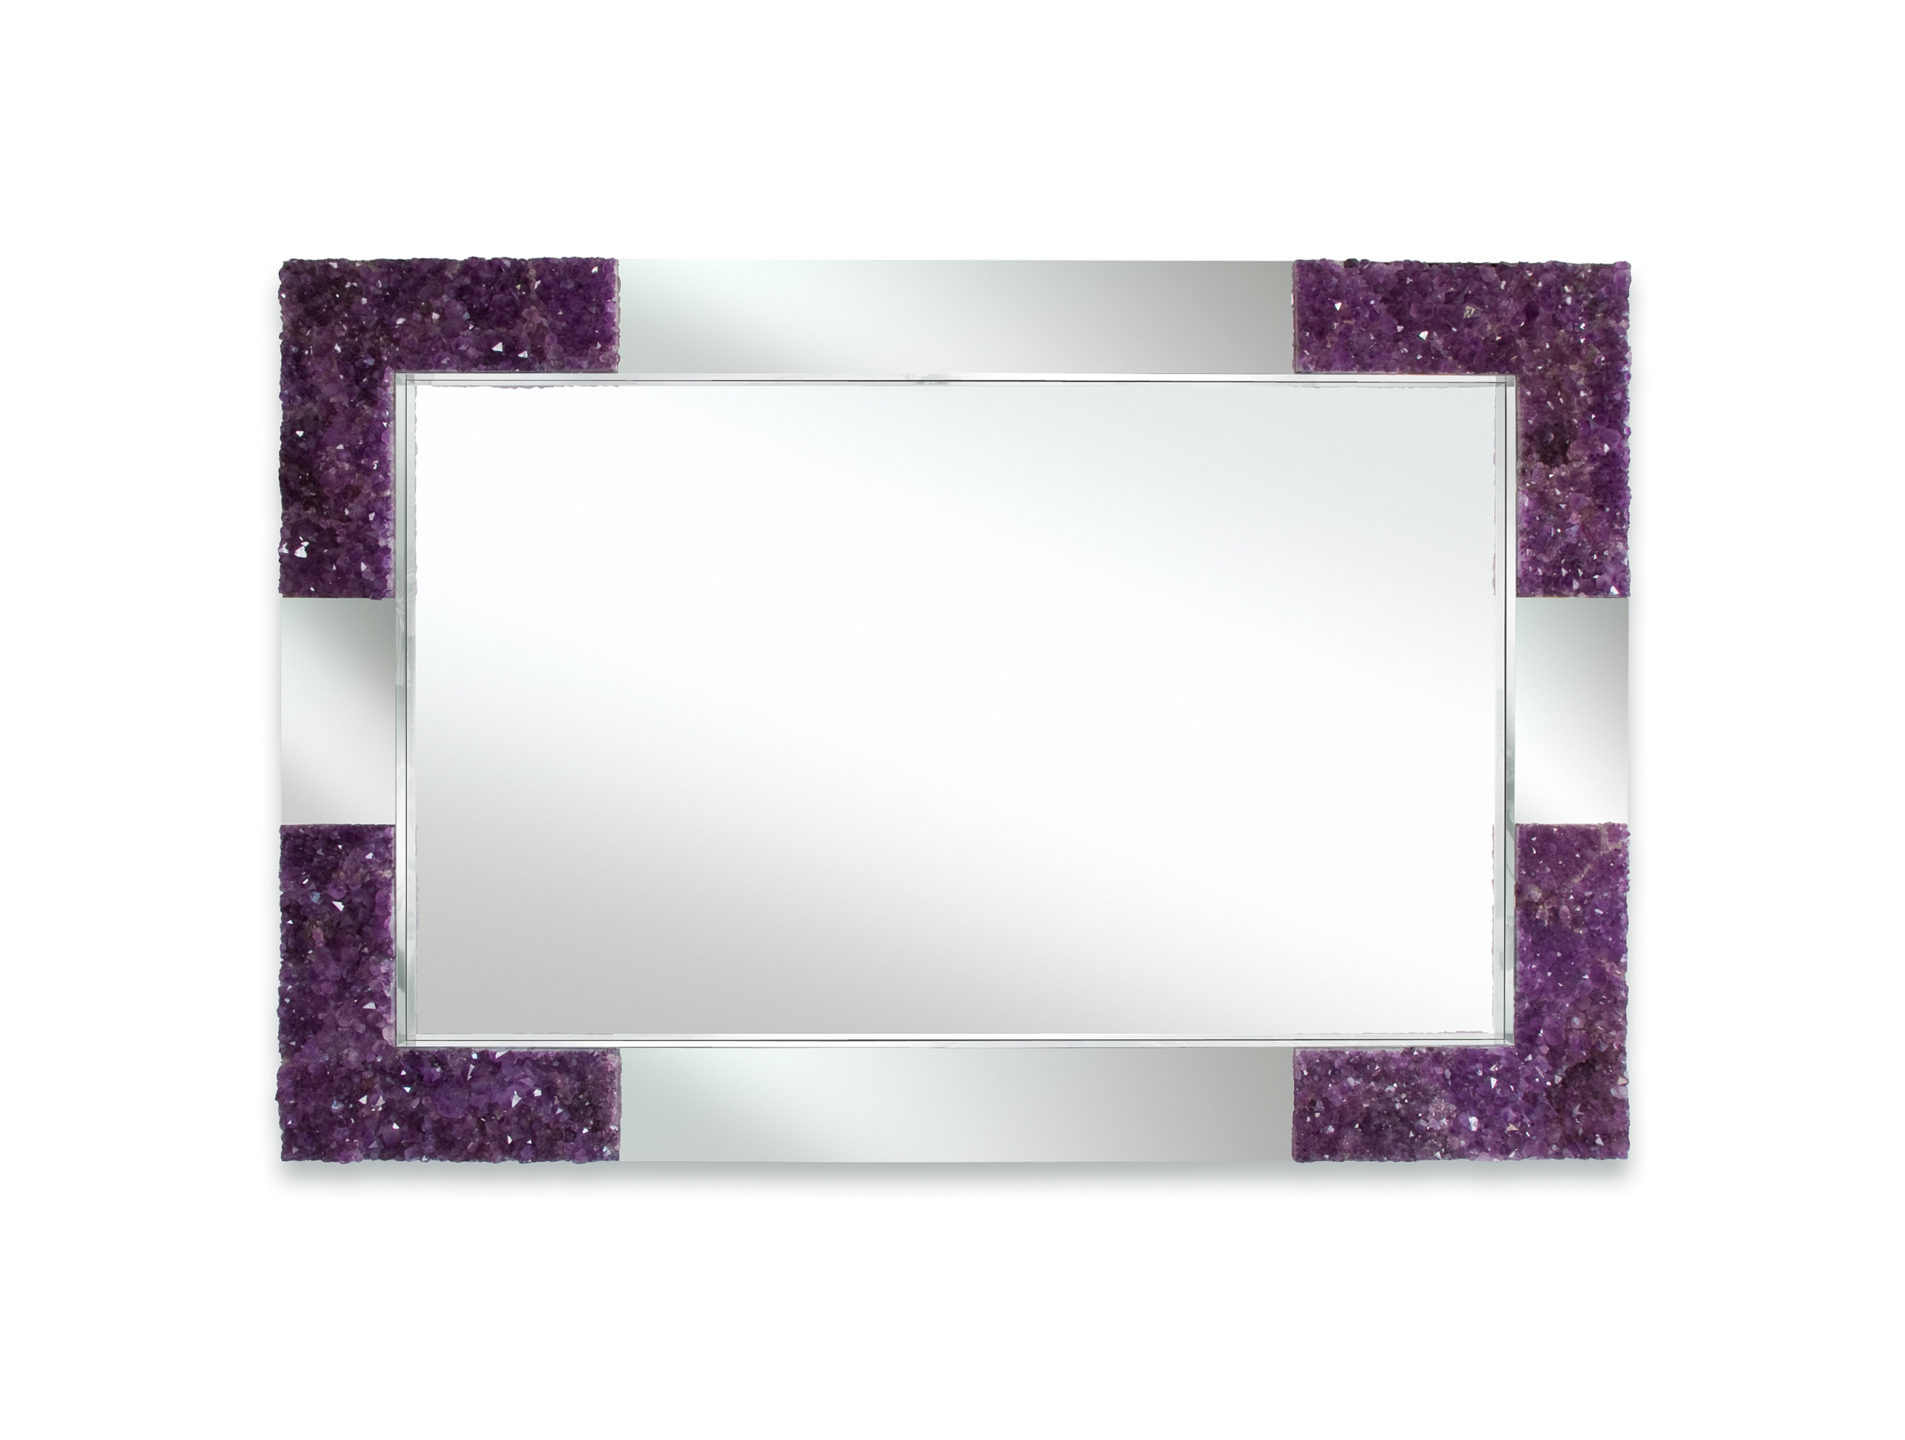 NATURAL-BEAUTY-mirror-2-nicole-fuller-product-information